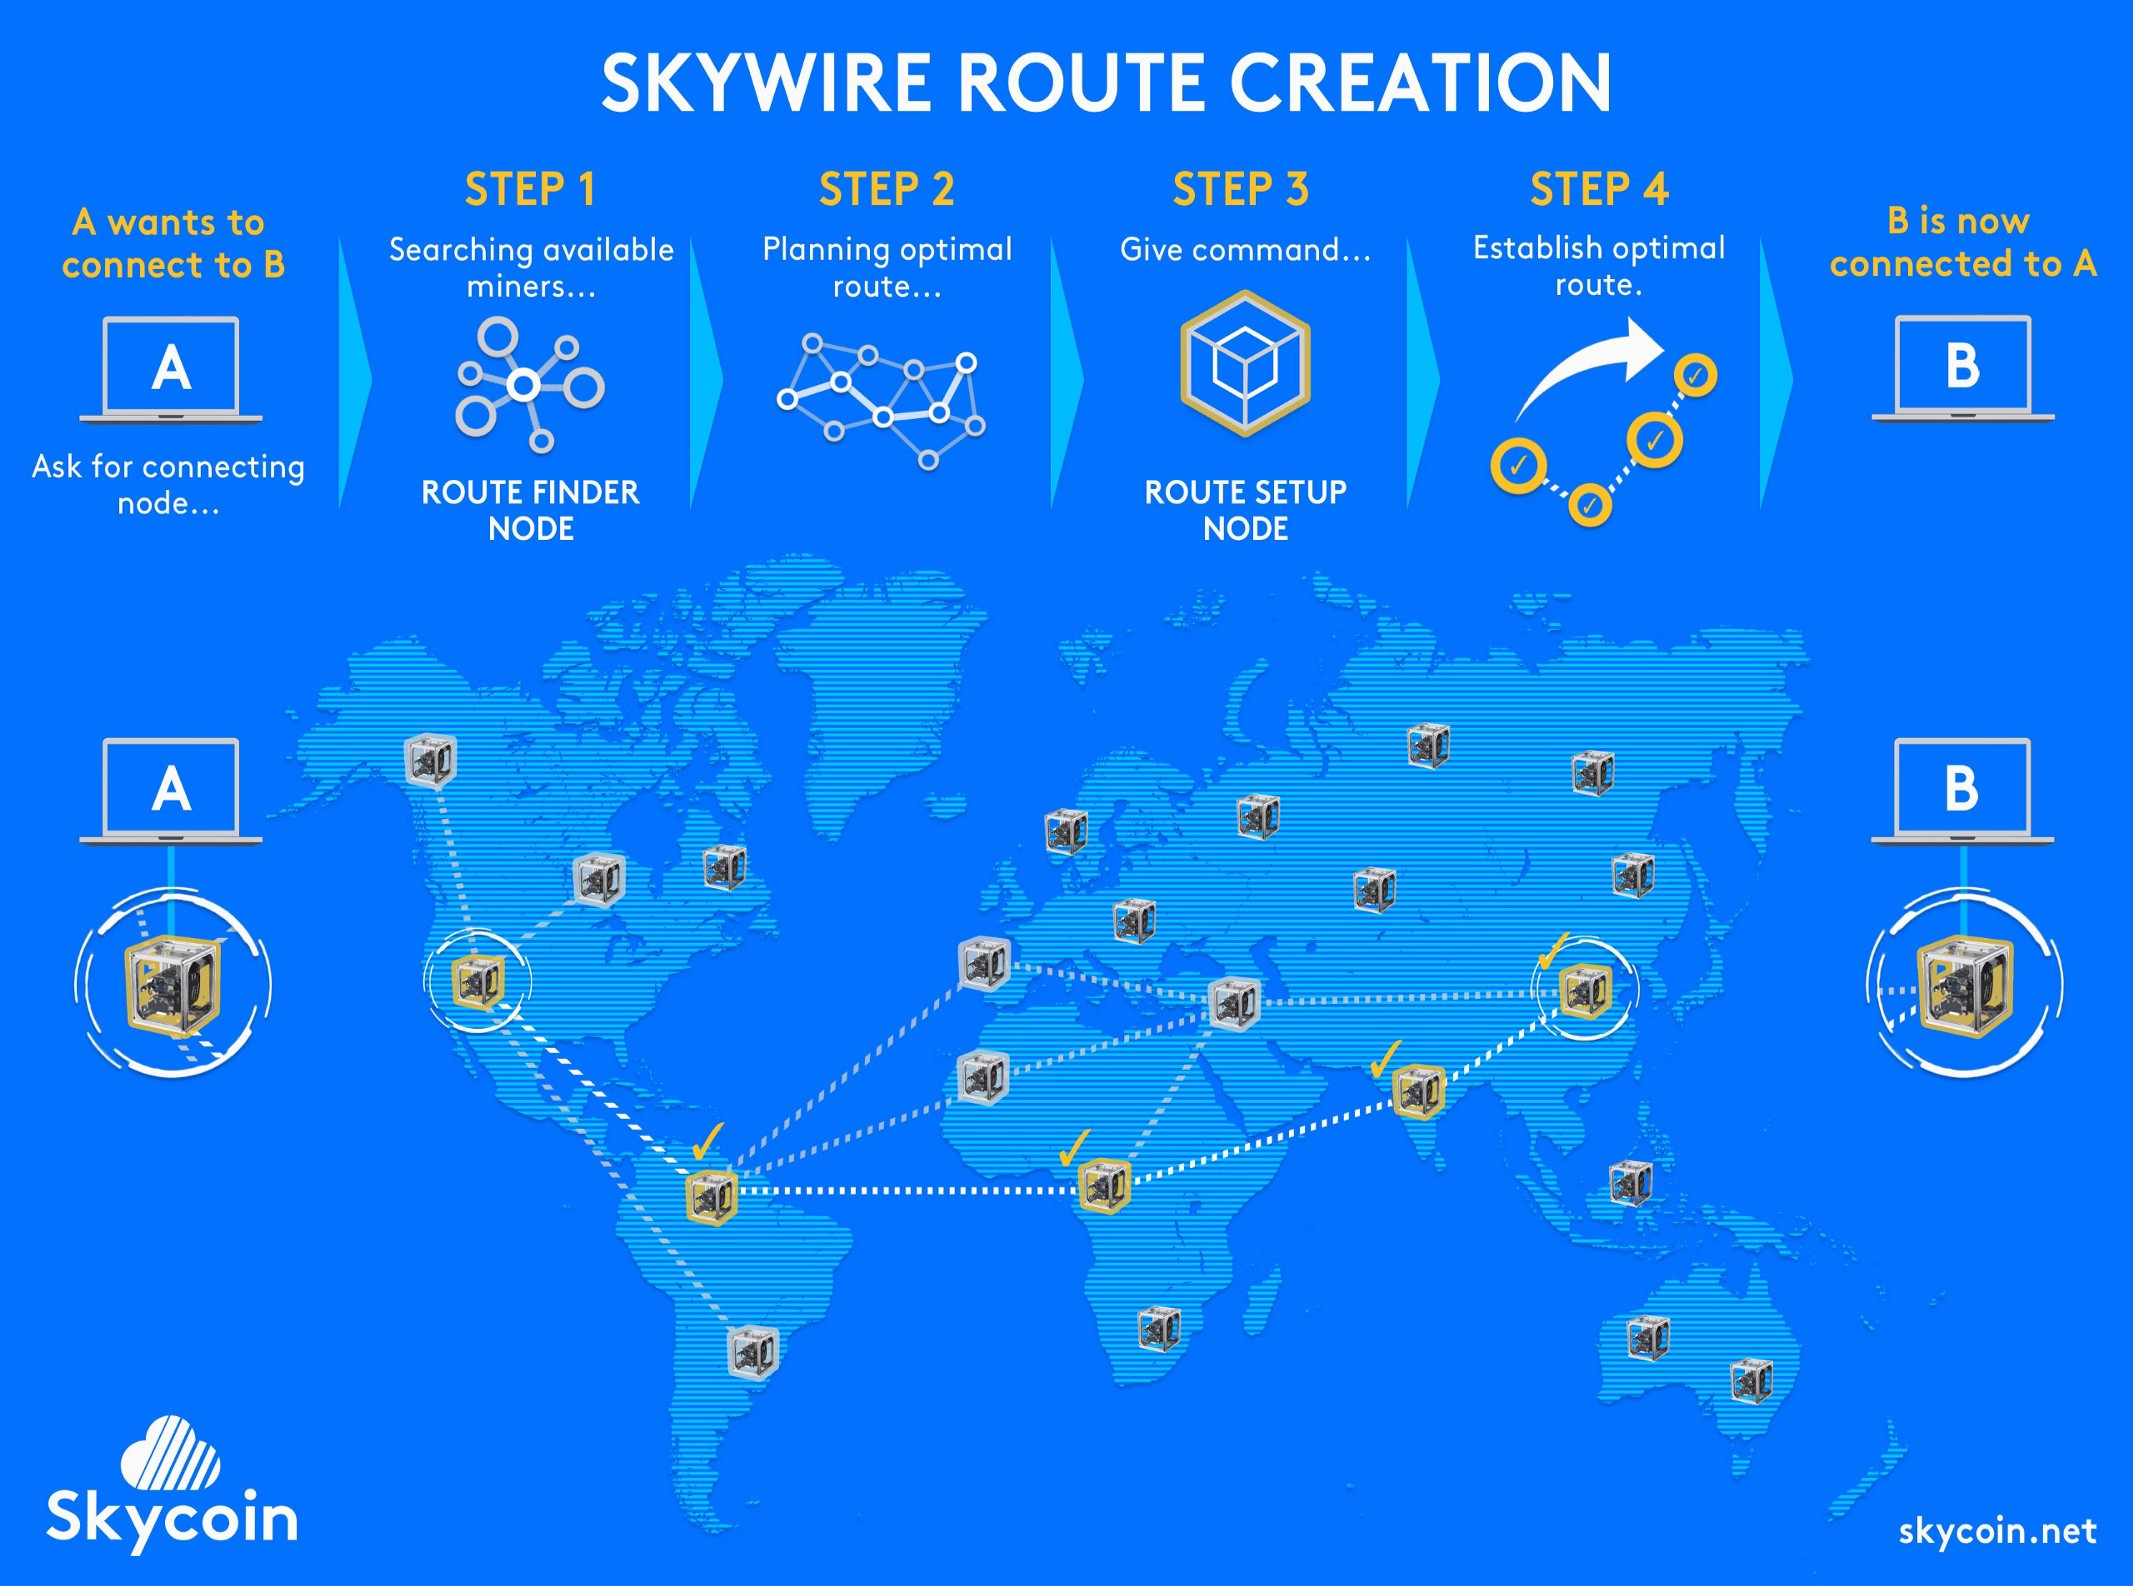 Skywire Route Creation